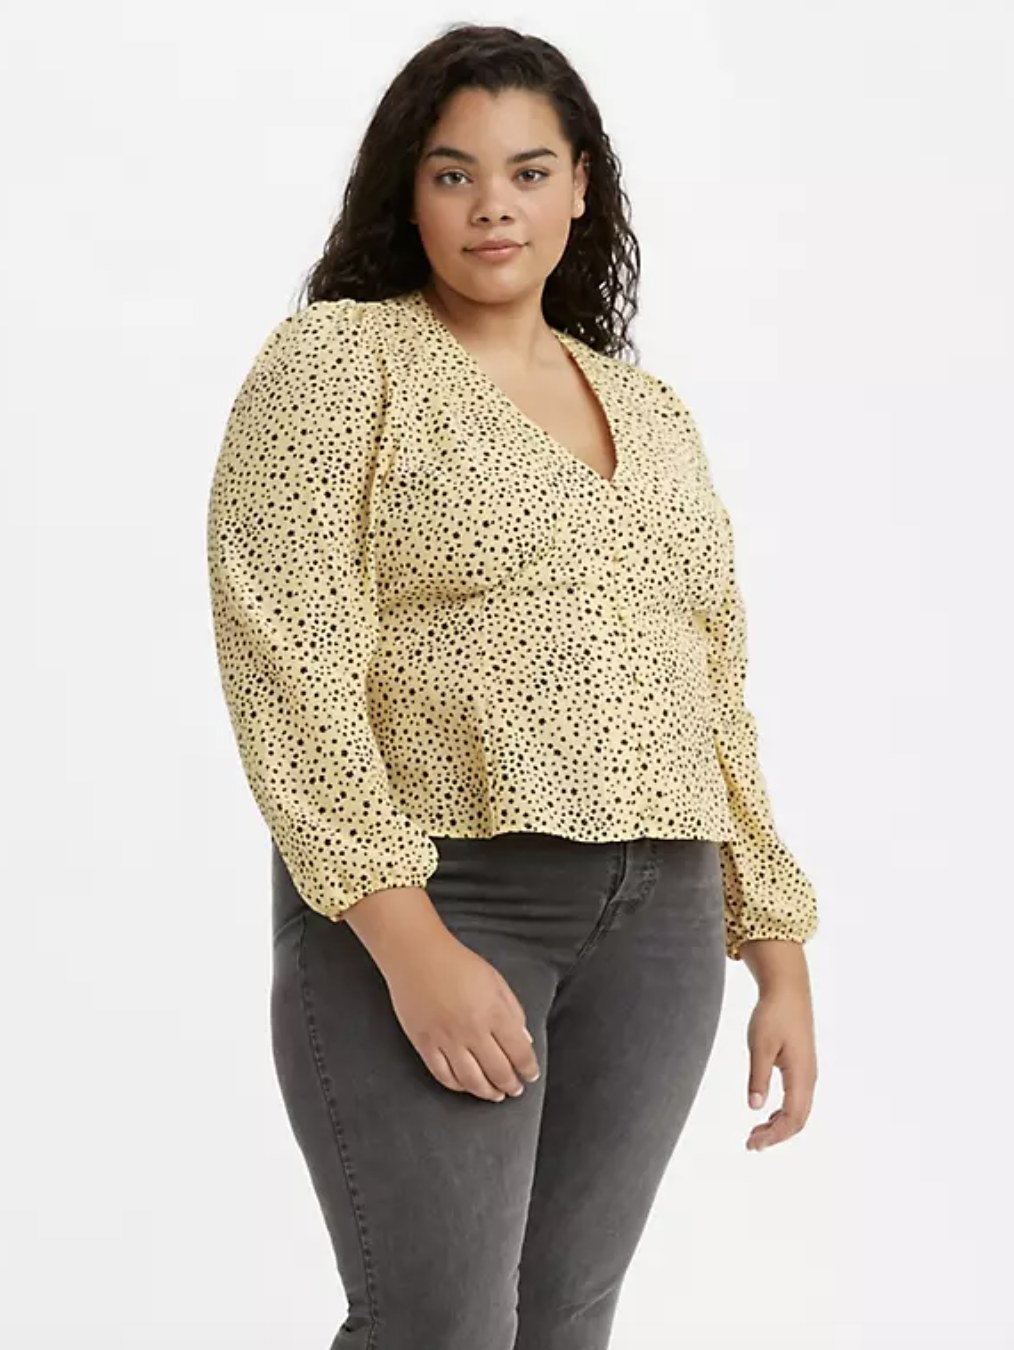 model wearing the top in yellow with black polka dots